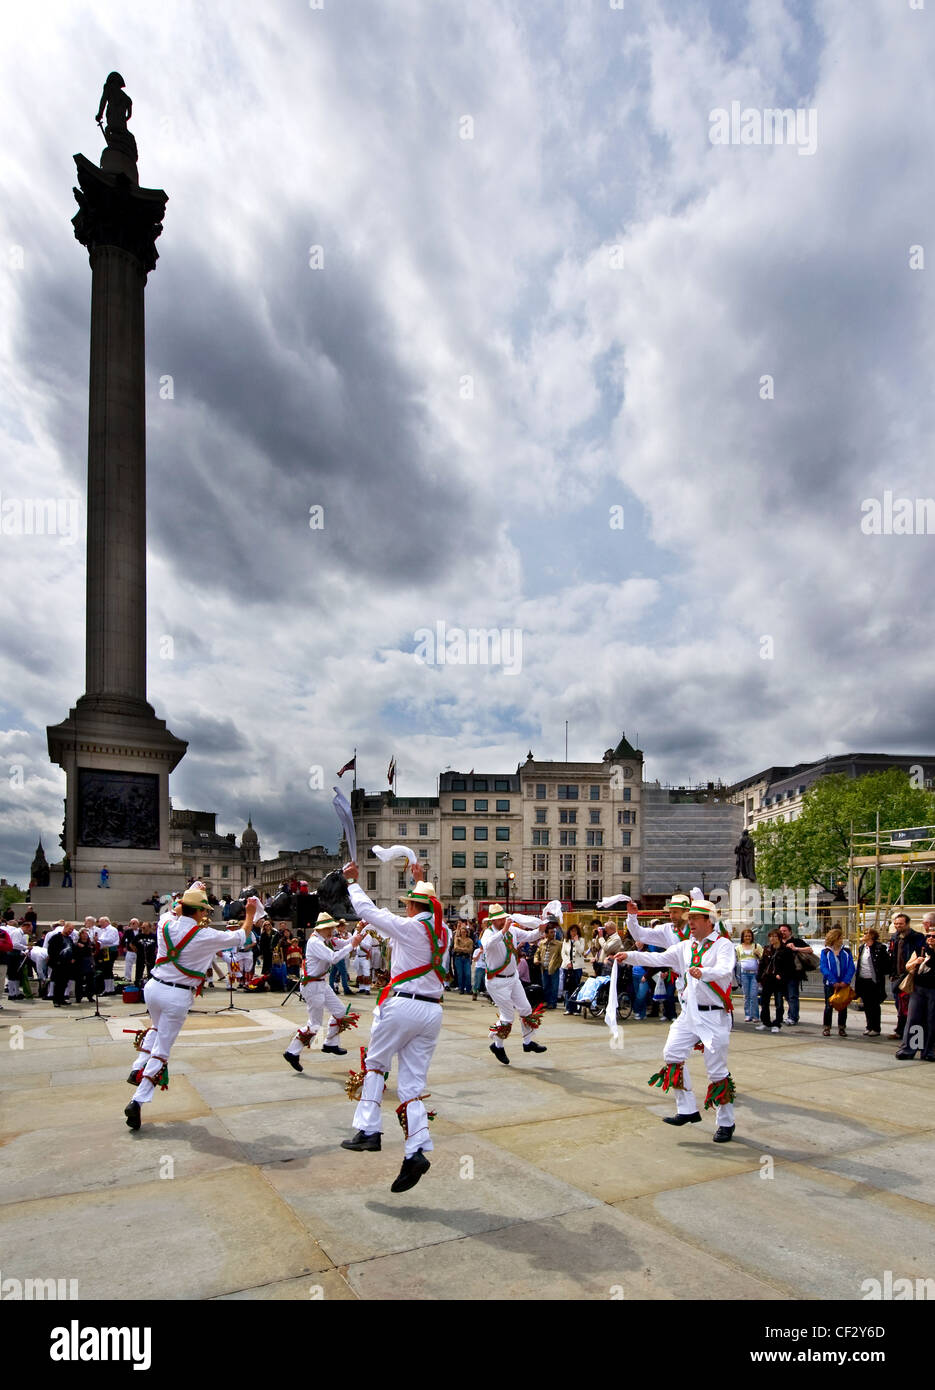 Dolphin Morris Men dancing at the Westminster Day of Dance in Trafalgar Square. - Stock Image